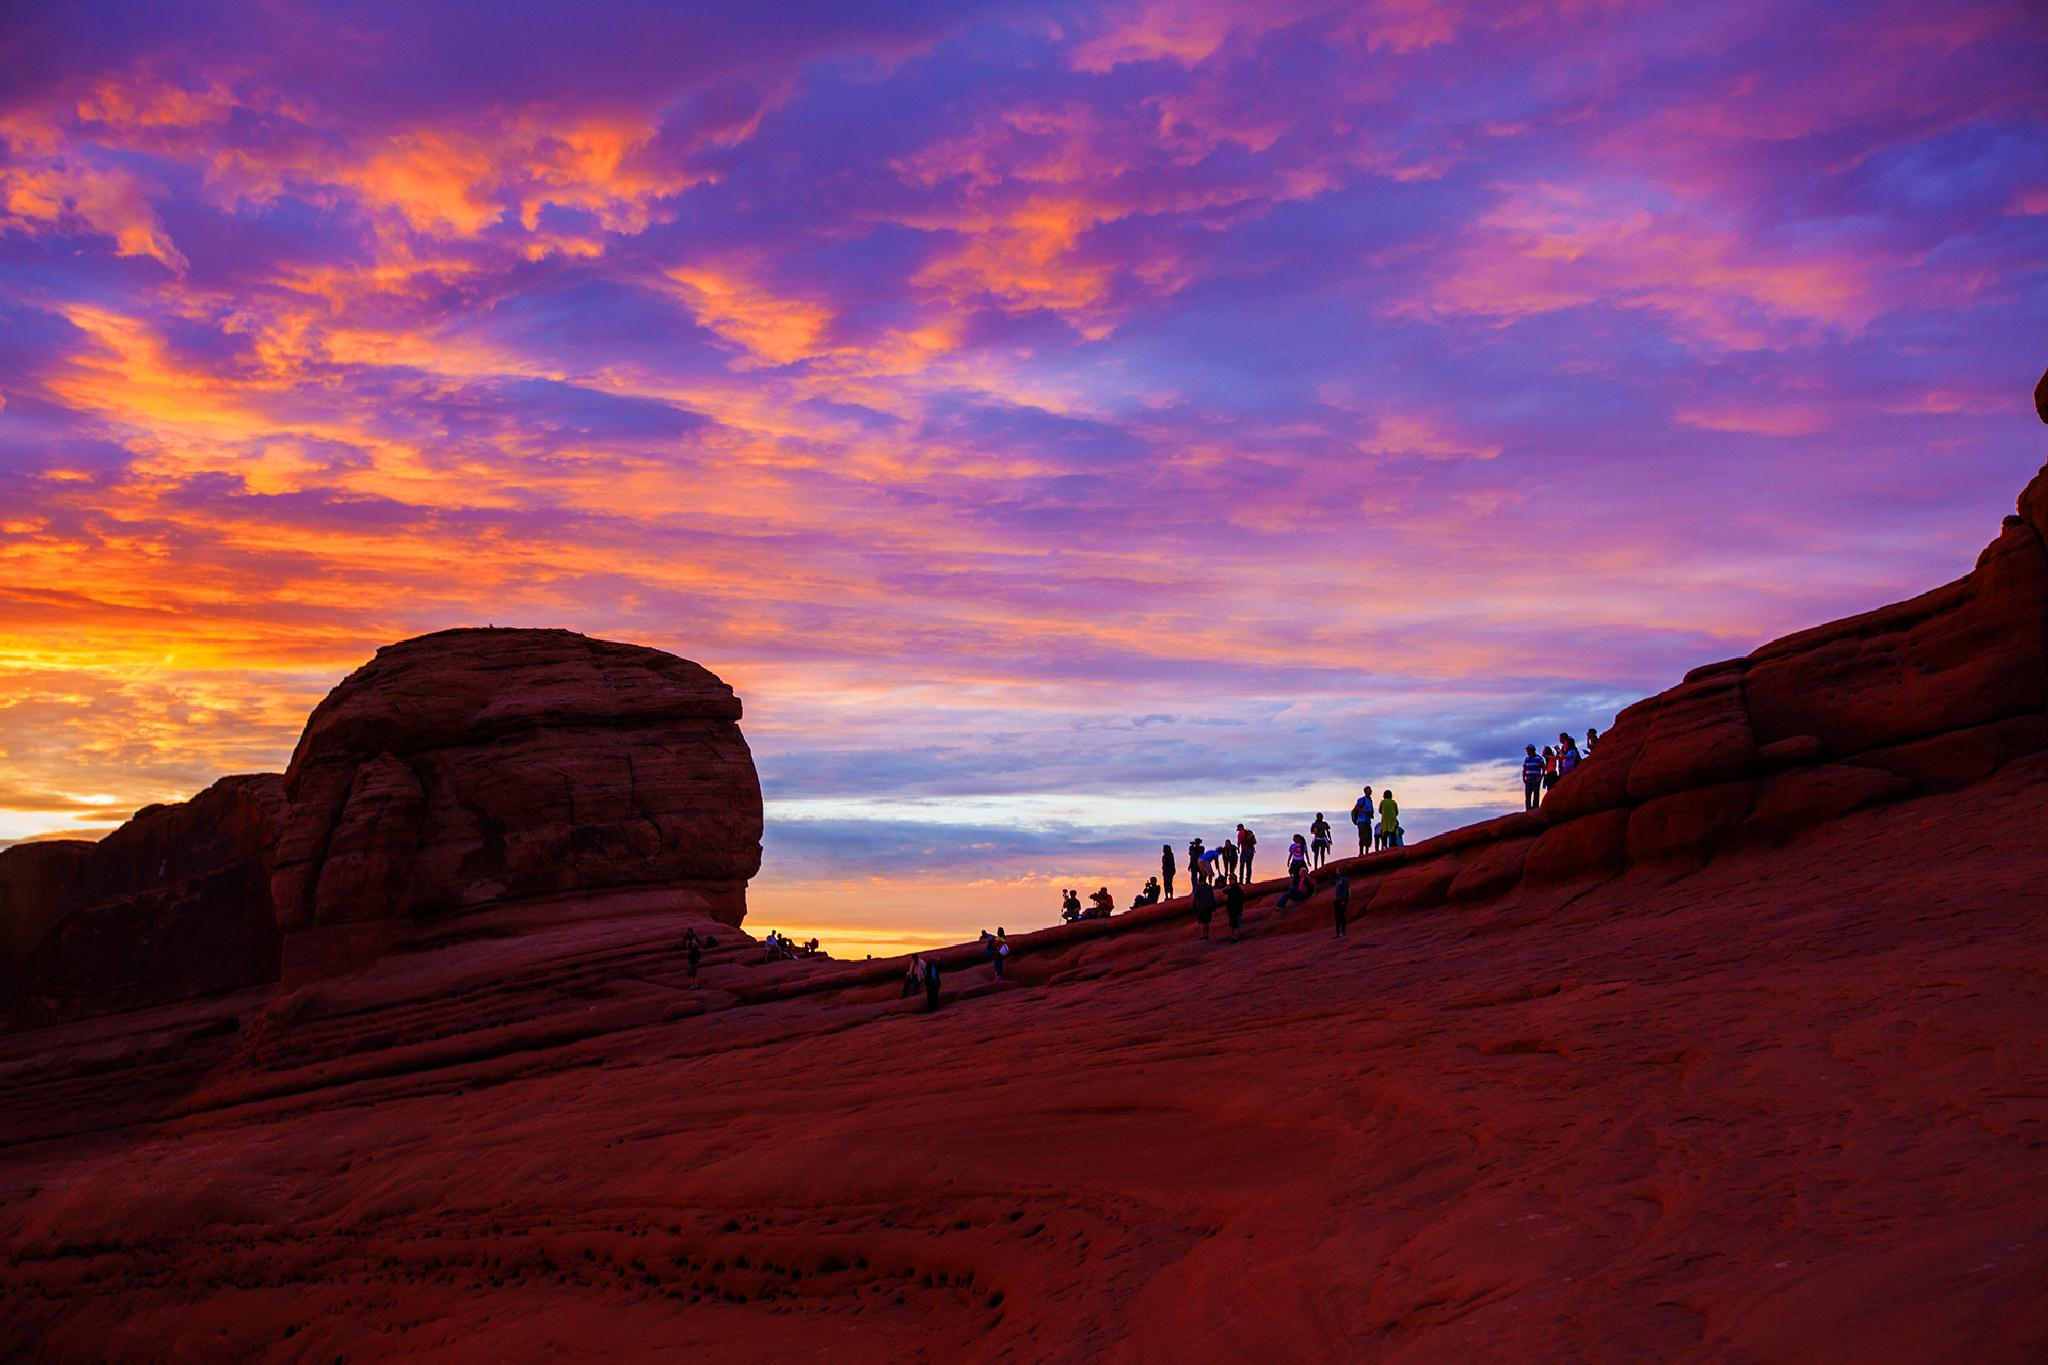 sunset at delicate arch by ck khui